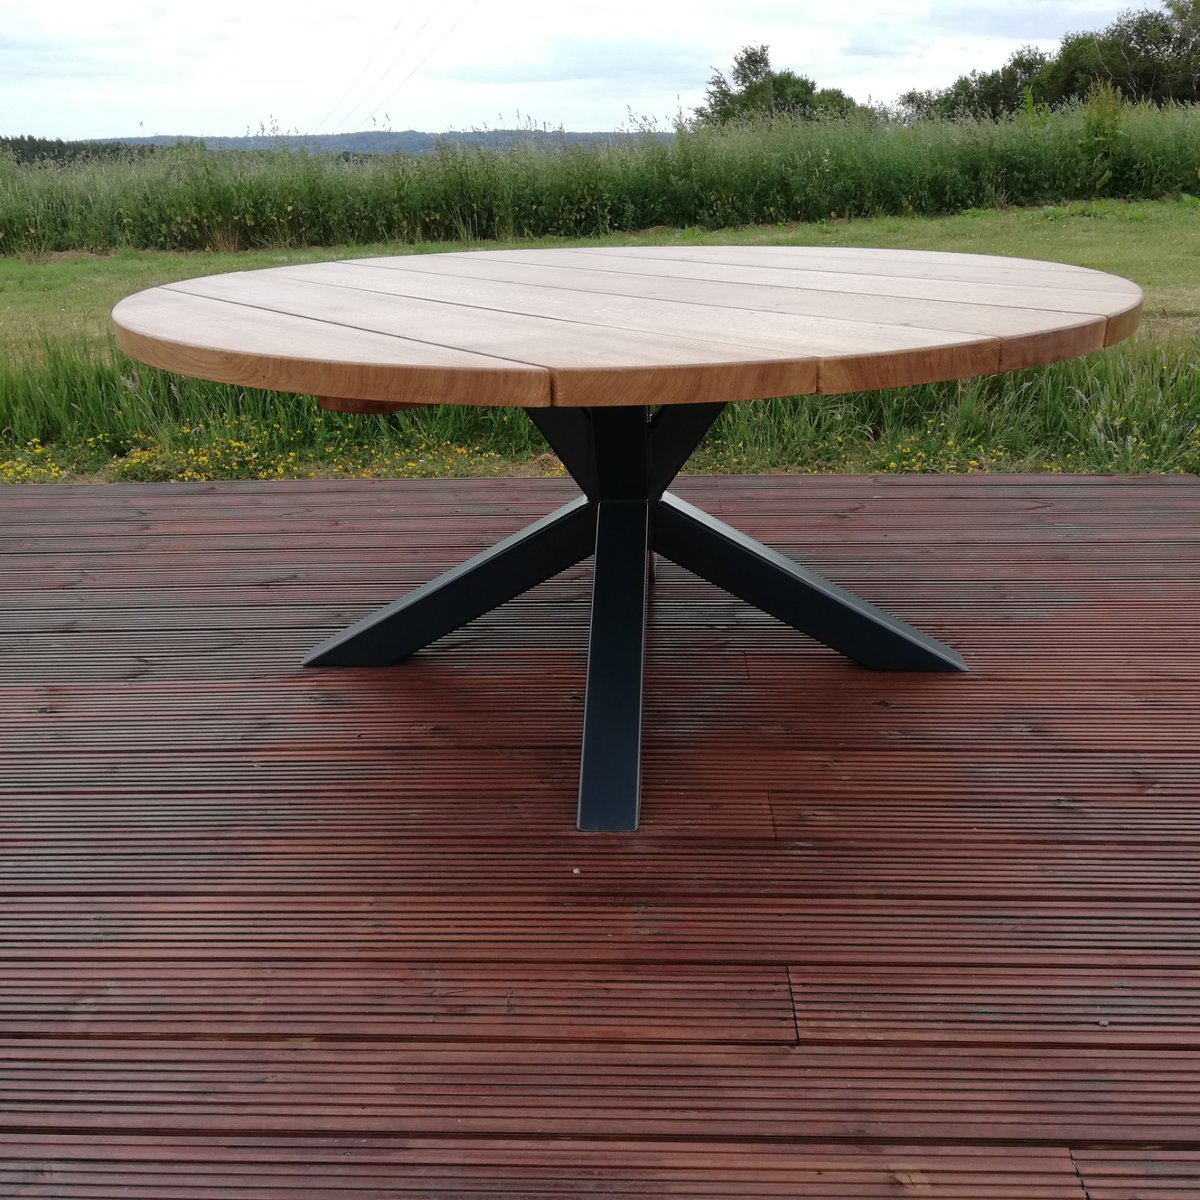 Just finished our latest commission our 4K steel and oak garden table featuring a powder coated steel base and a solid oak 50 mm thick planked top #handmade #garden #furniture #outdoor #dining #bespoke #furnituremakerspic.twitter.com/eLtUH3B8WS